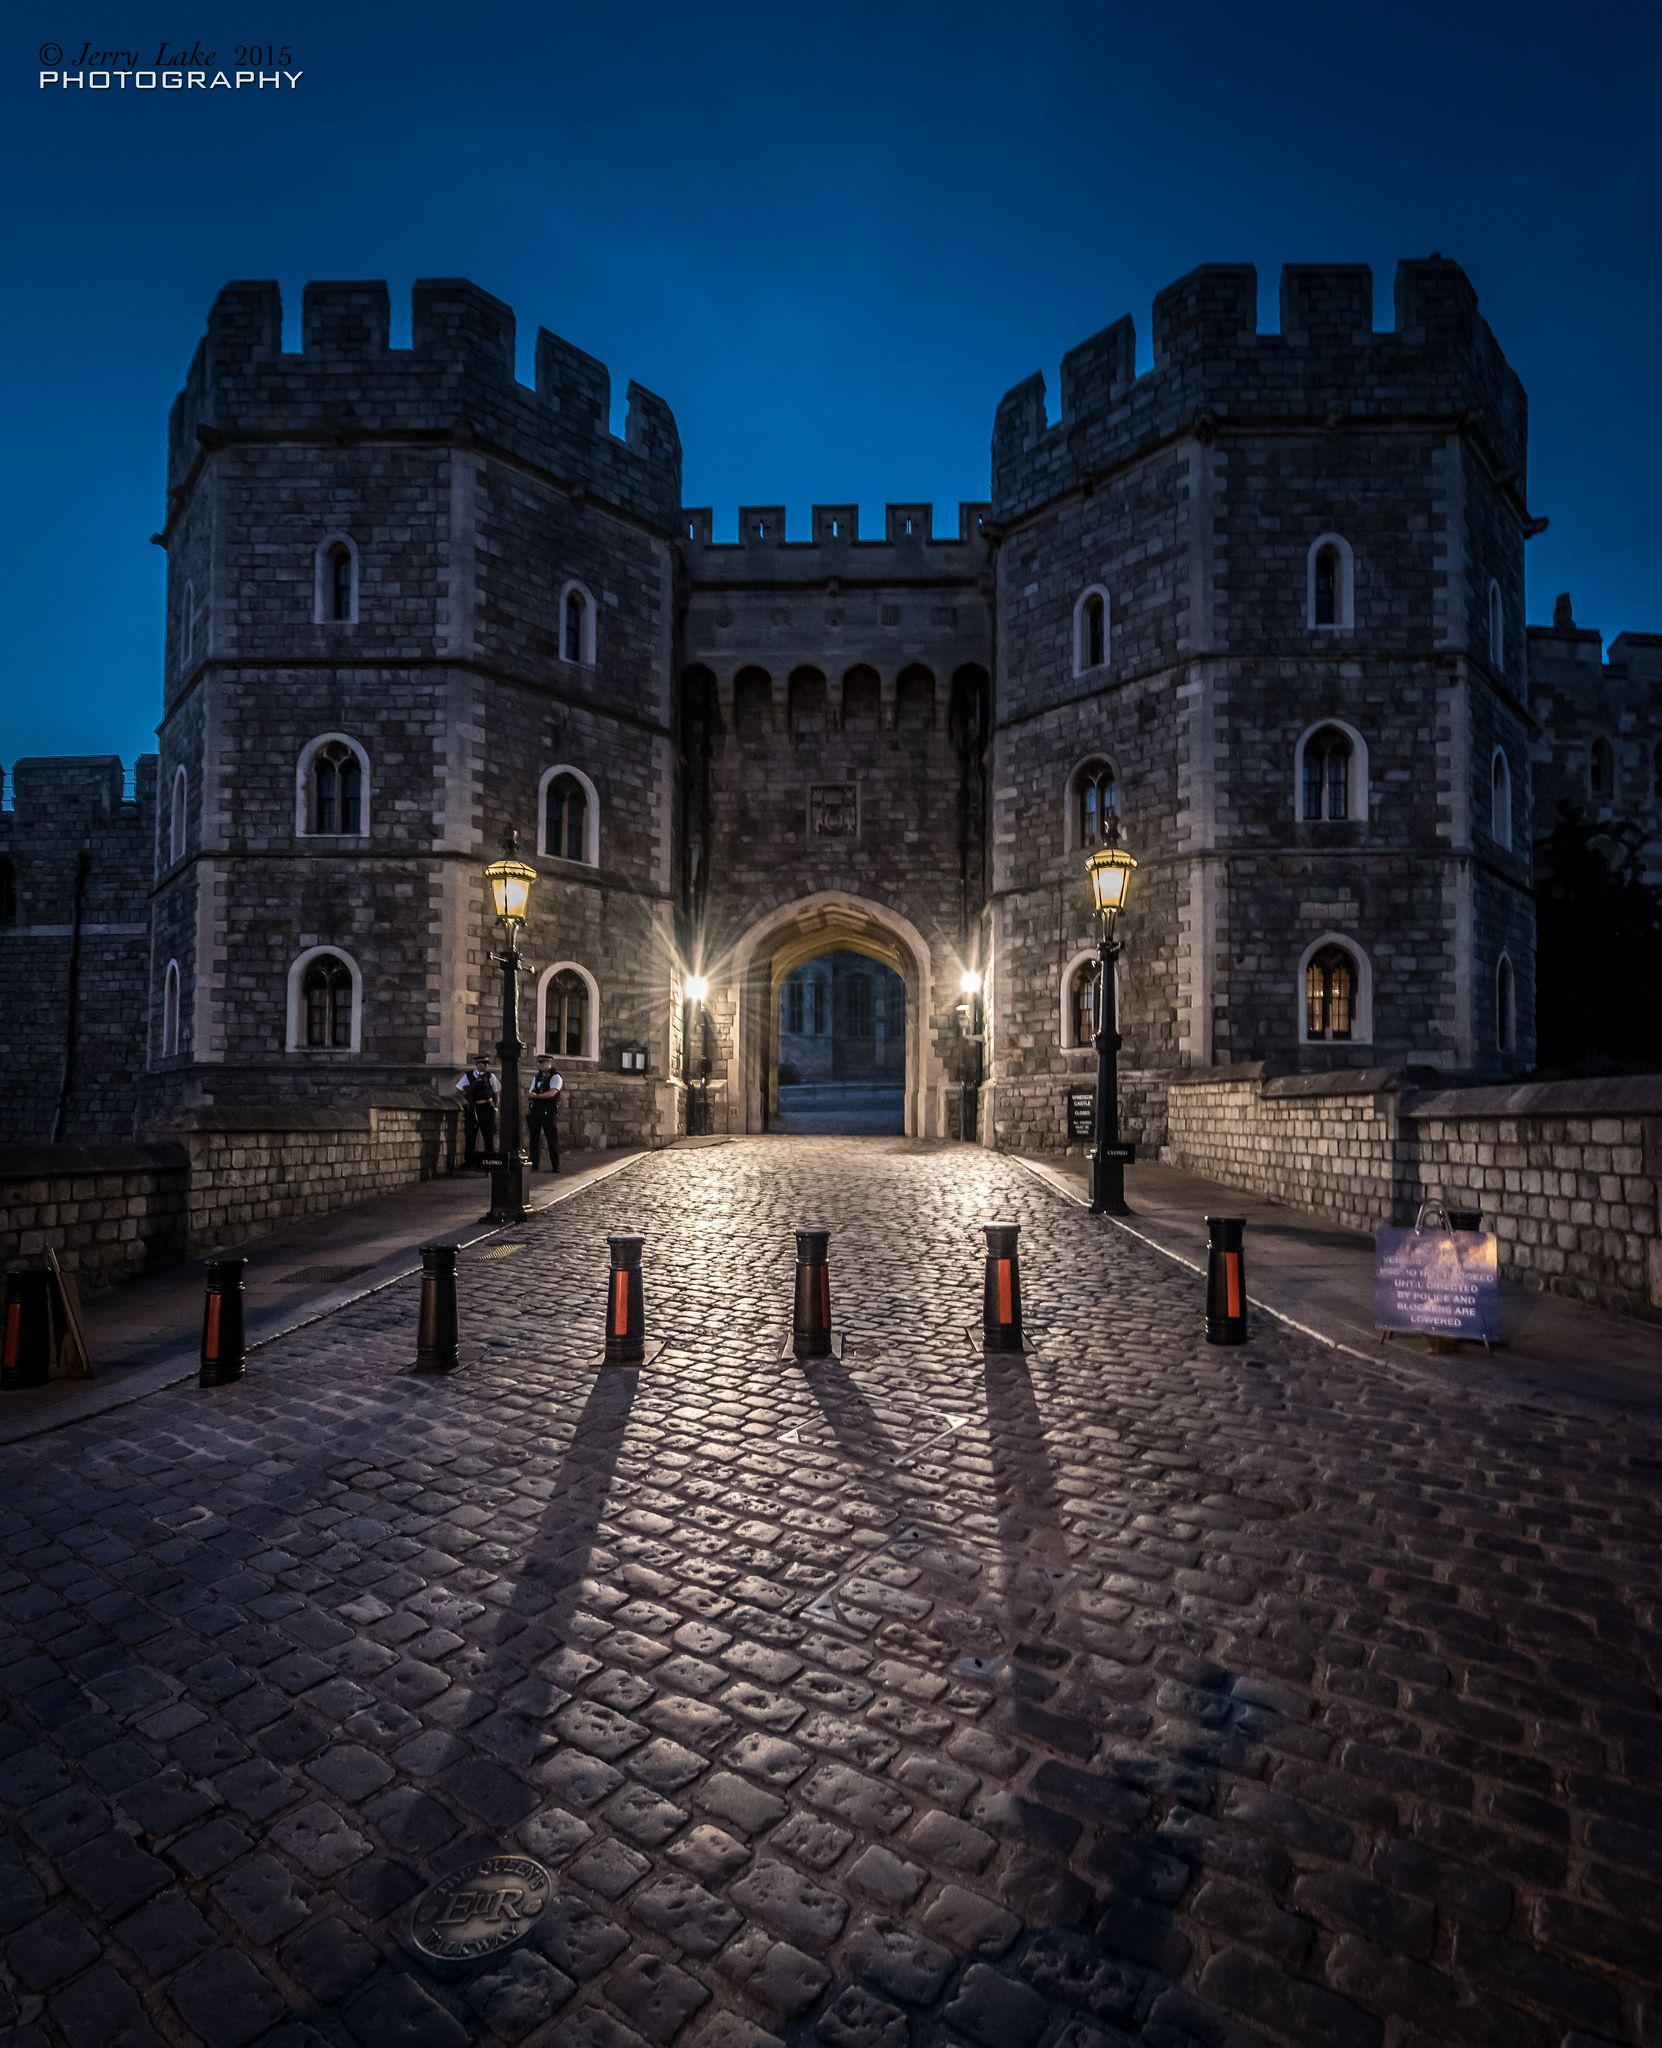 https://flic.kr/p/LwnFJF | Henry VIII Gate Windsor Castle {Explore} | Evening shoot with camera club to Windsor. In the foreground is one of 63 foot-way plates that are dotted around Windsor. (Camera info - handheld, ISO 2800 {auto-iso} f/6.3, shutter 1/15 second, focal length 15mm no flash.)